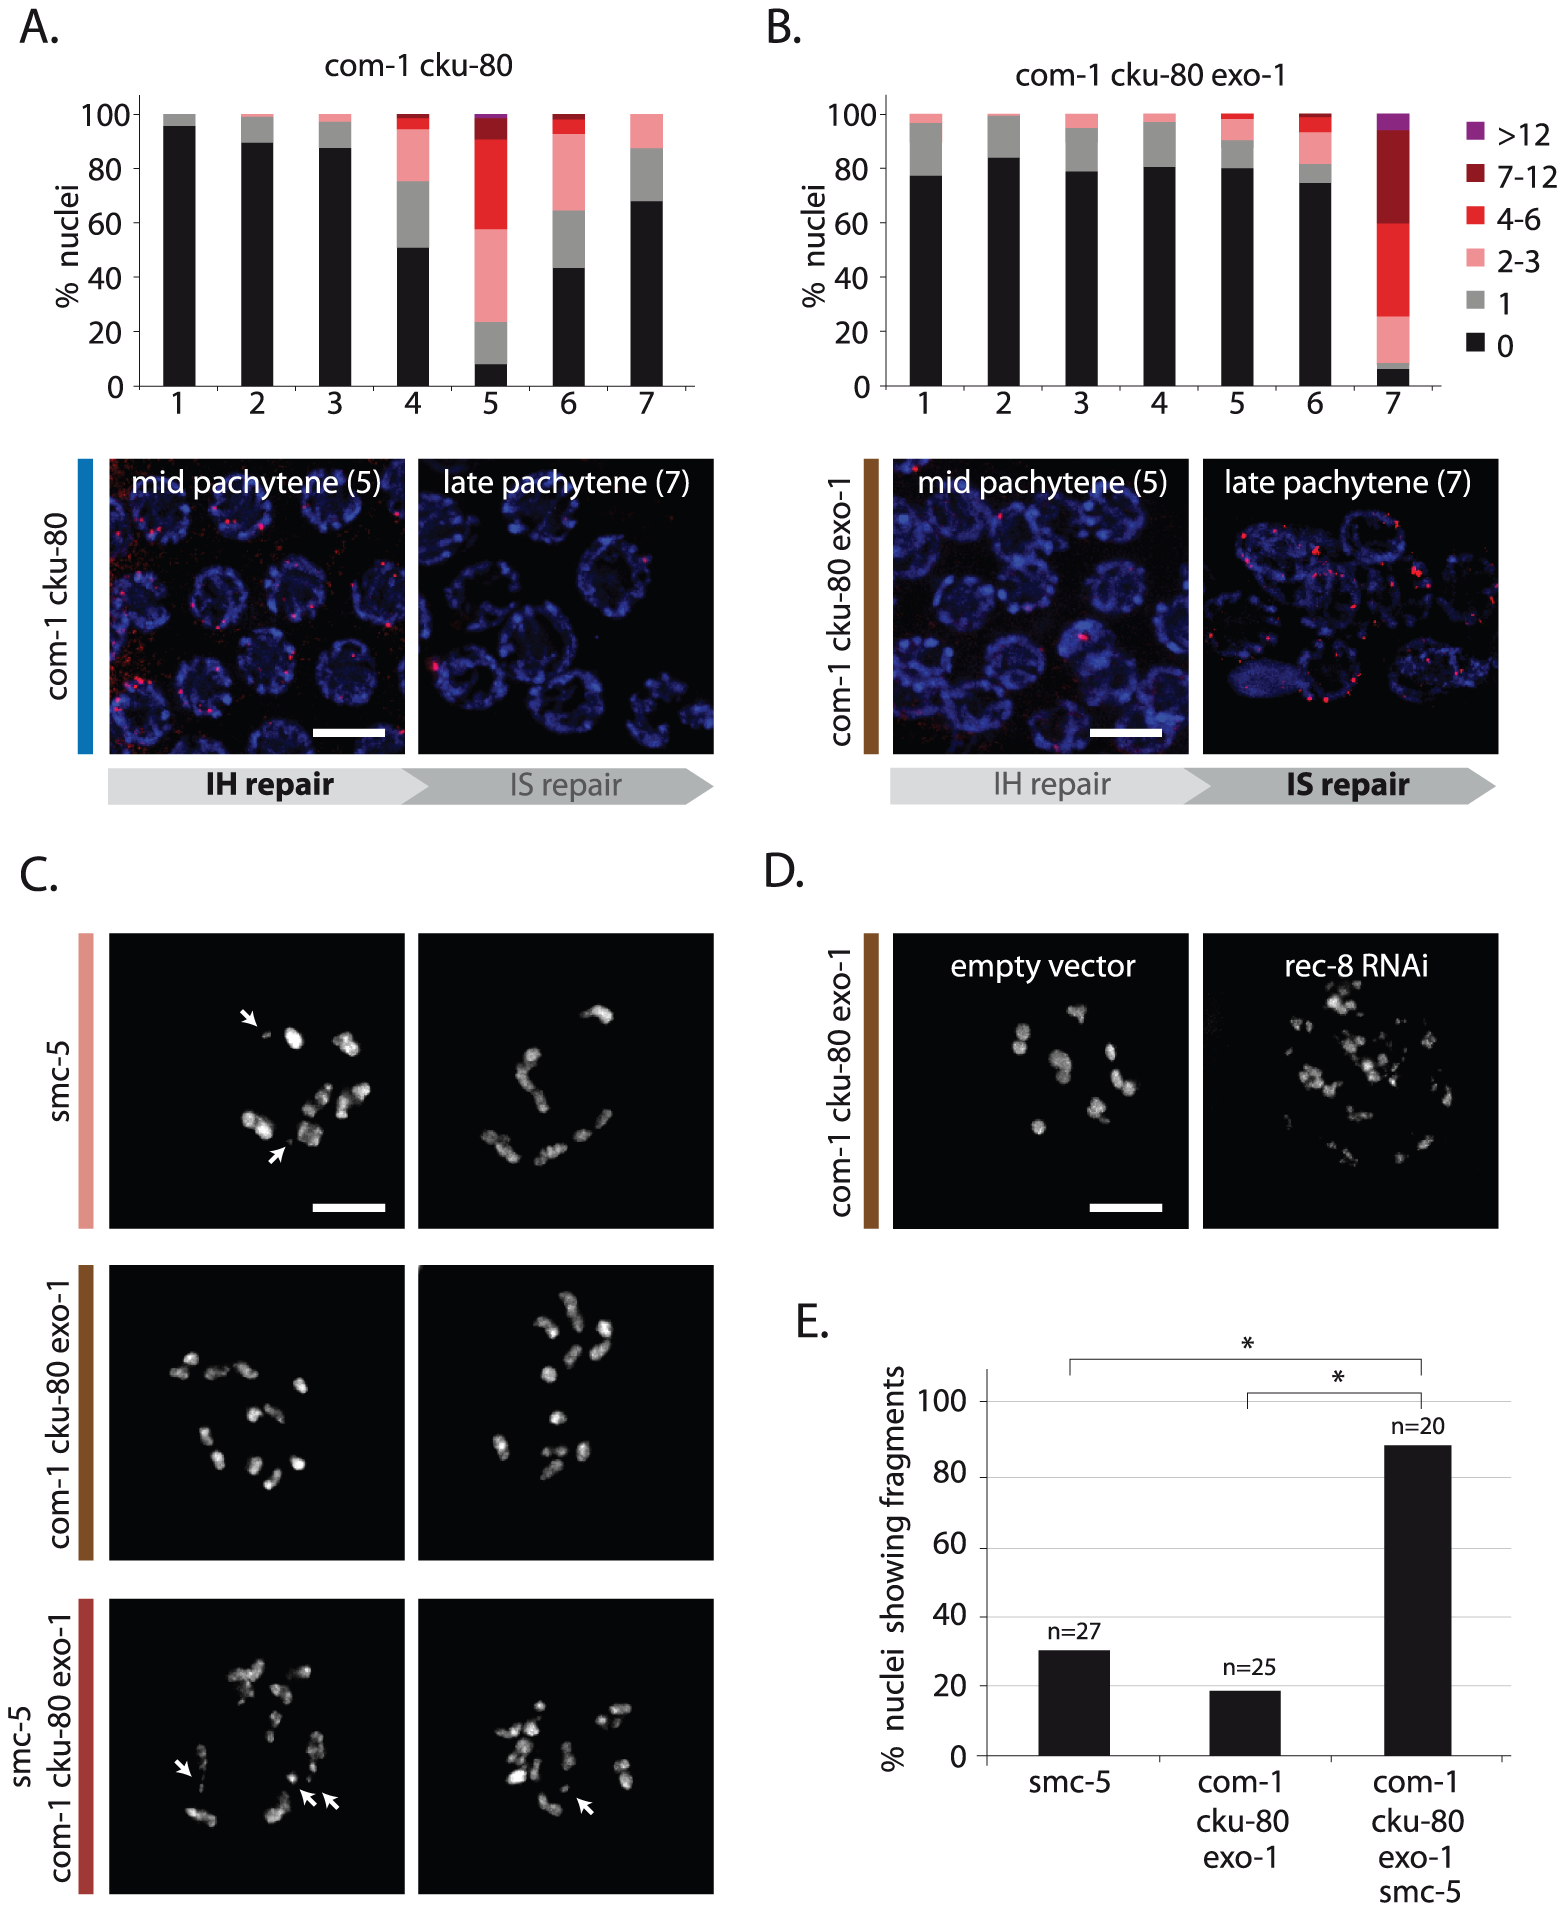 EXO-1 and COM-1 are needed for efficient interhomolog HR, but dispensable for intersister HR.